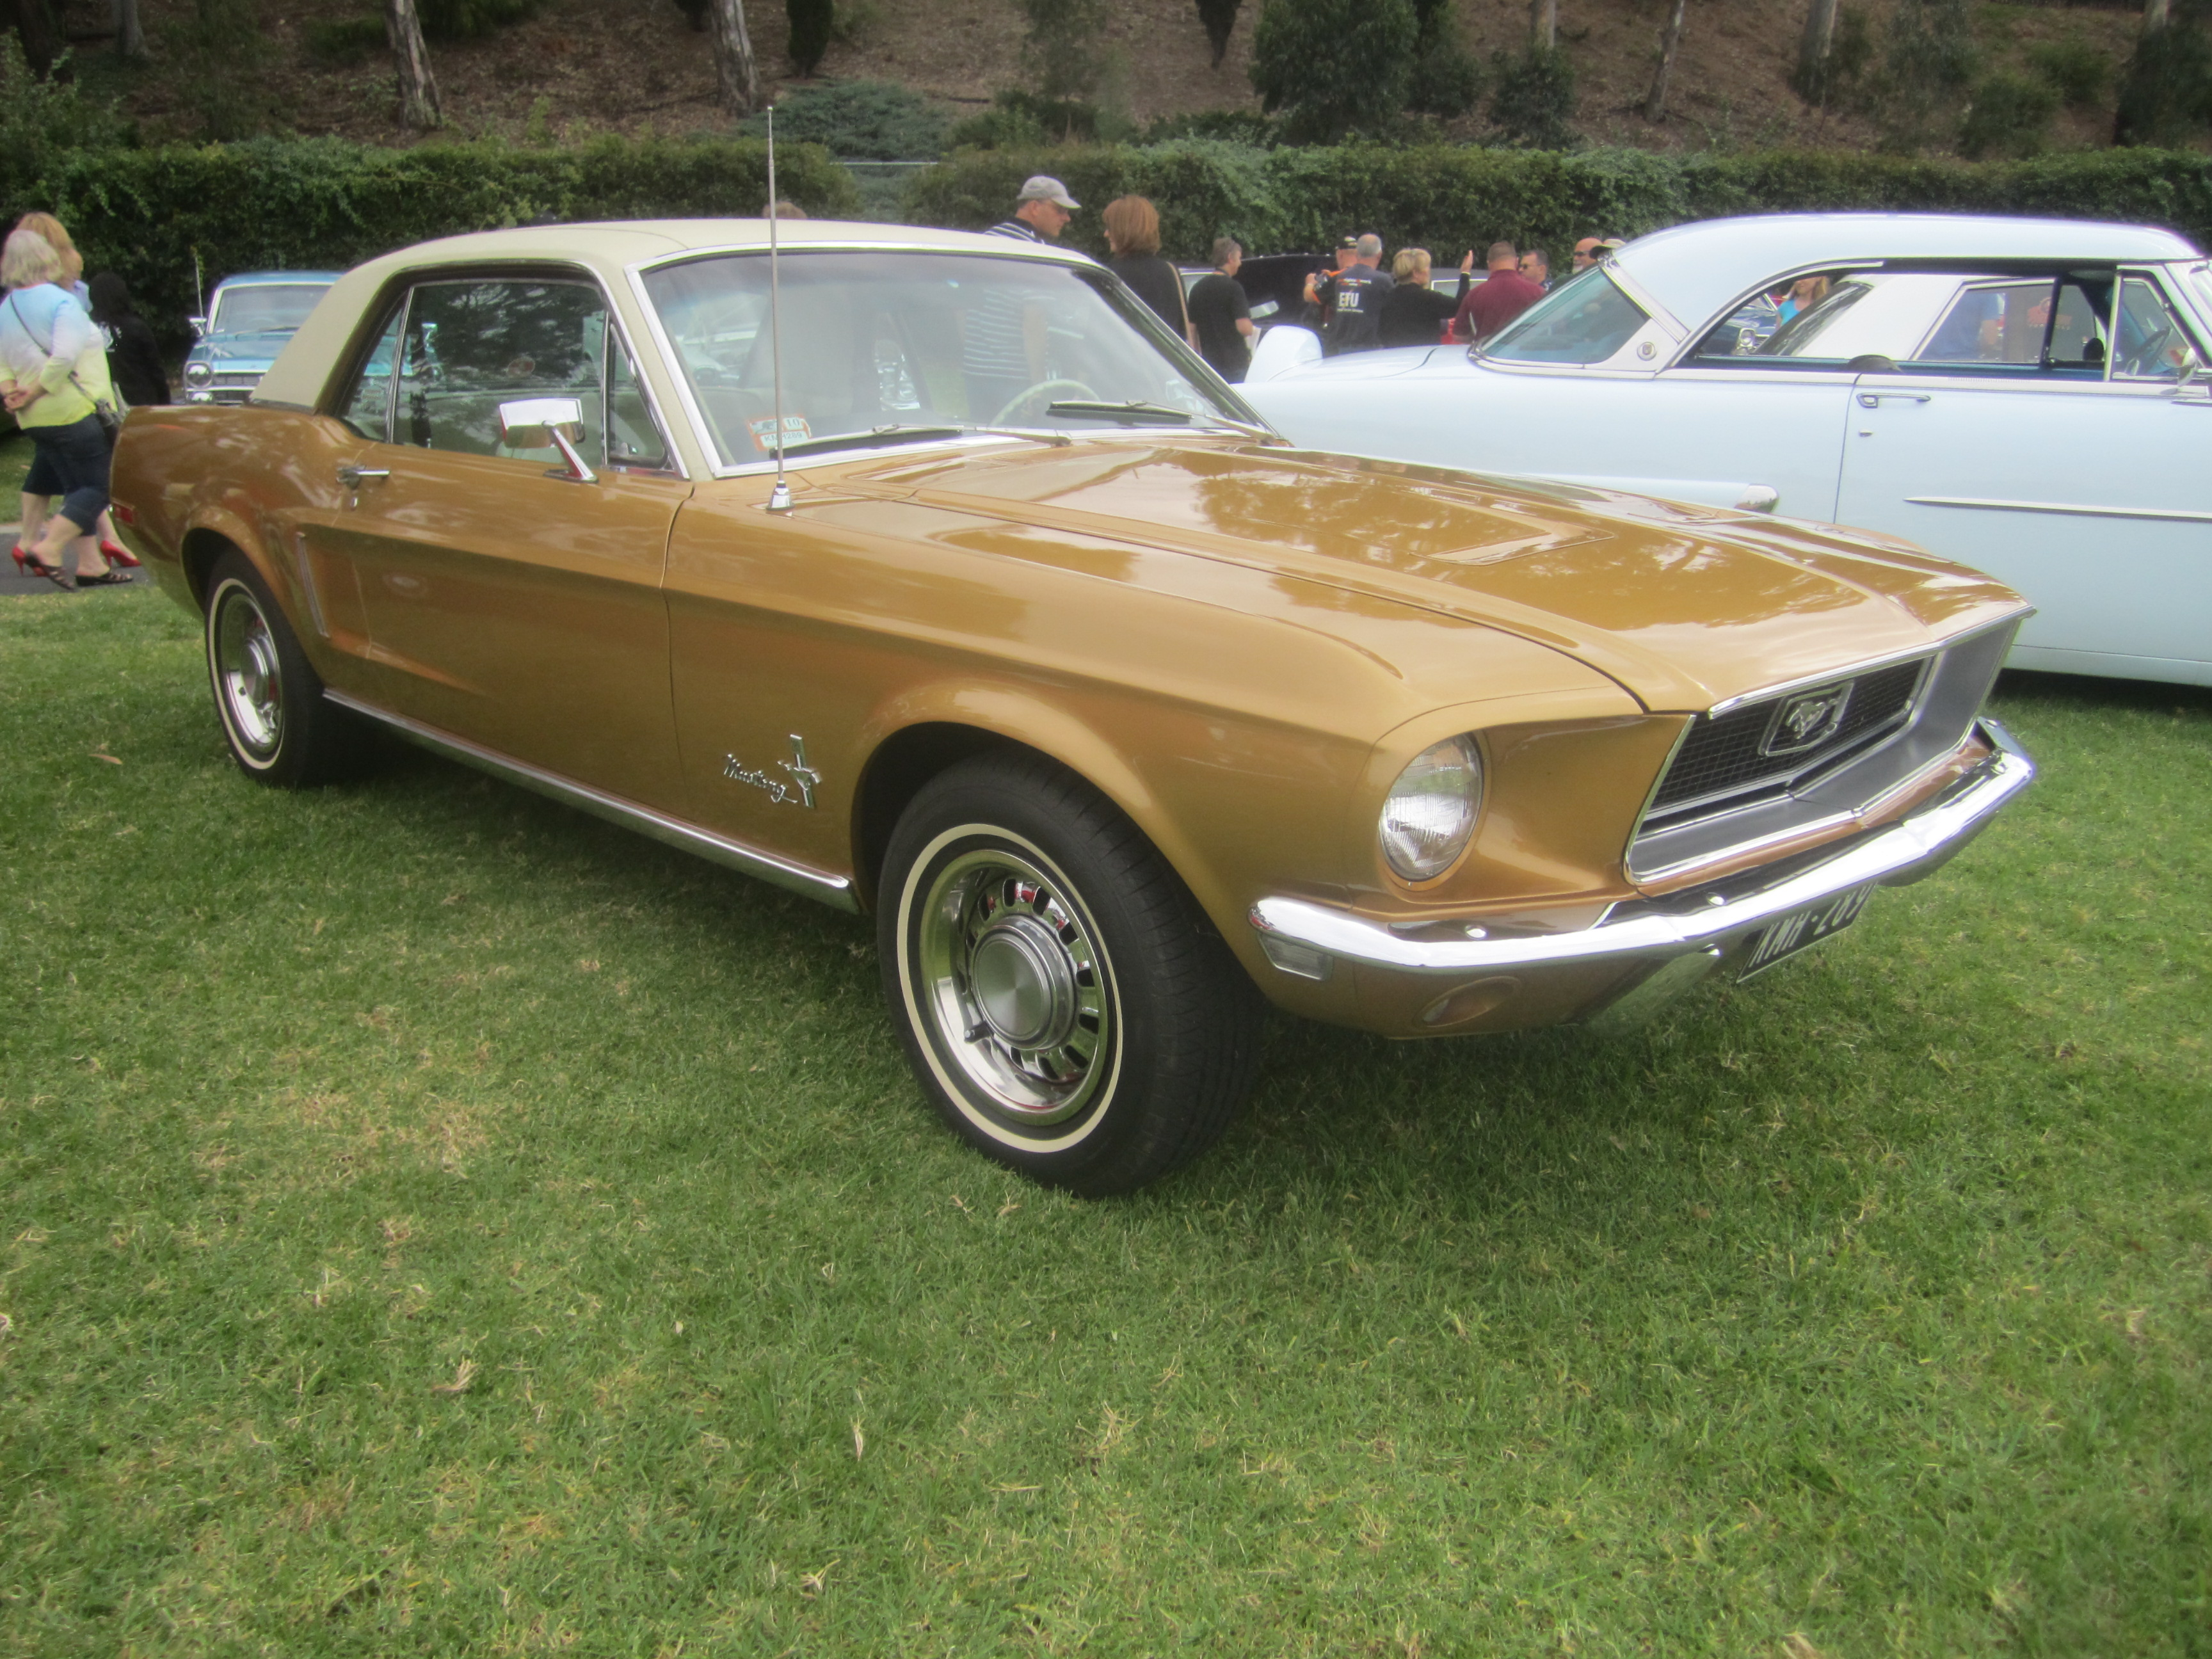 1968 Ford Mustang 390 Gt 2 2 Fastback >> File:1968 Ford Mustang Hardtop.jpg - Wikimedia Commons